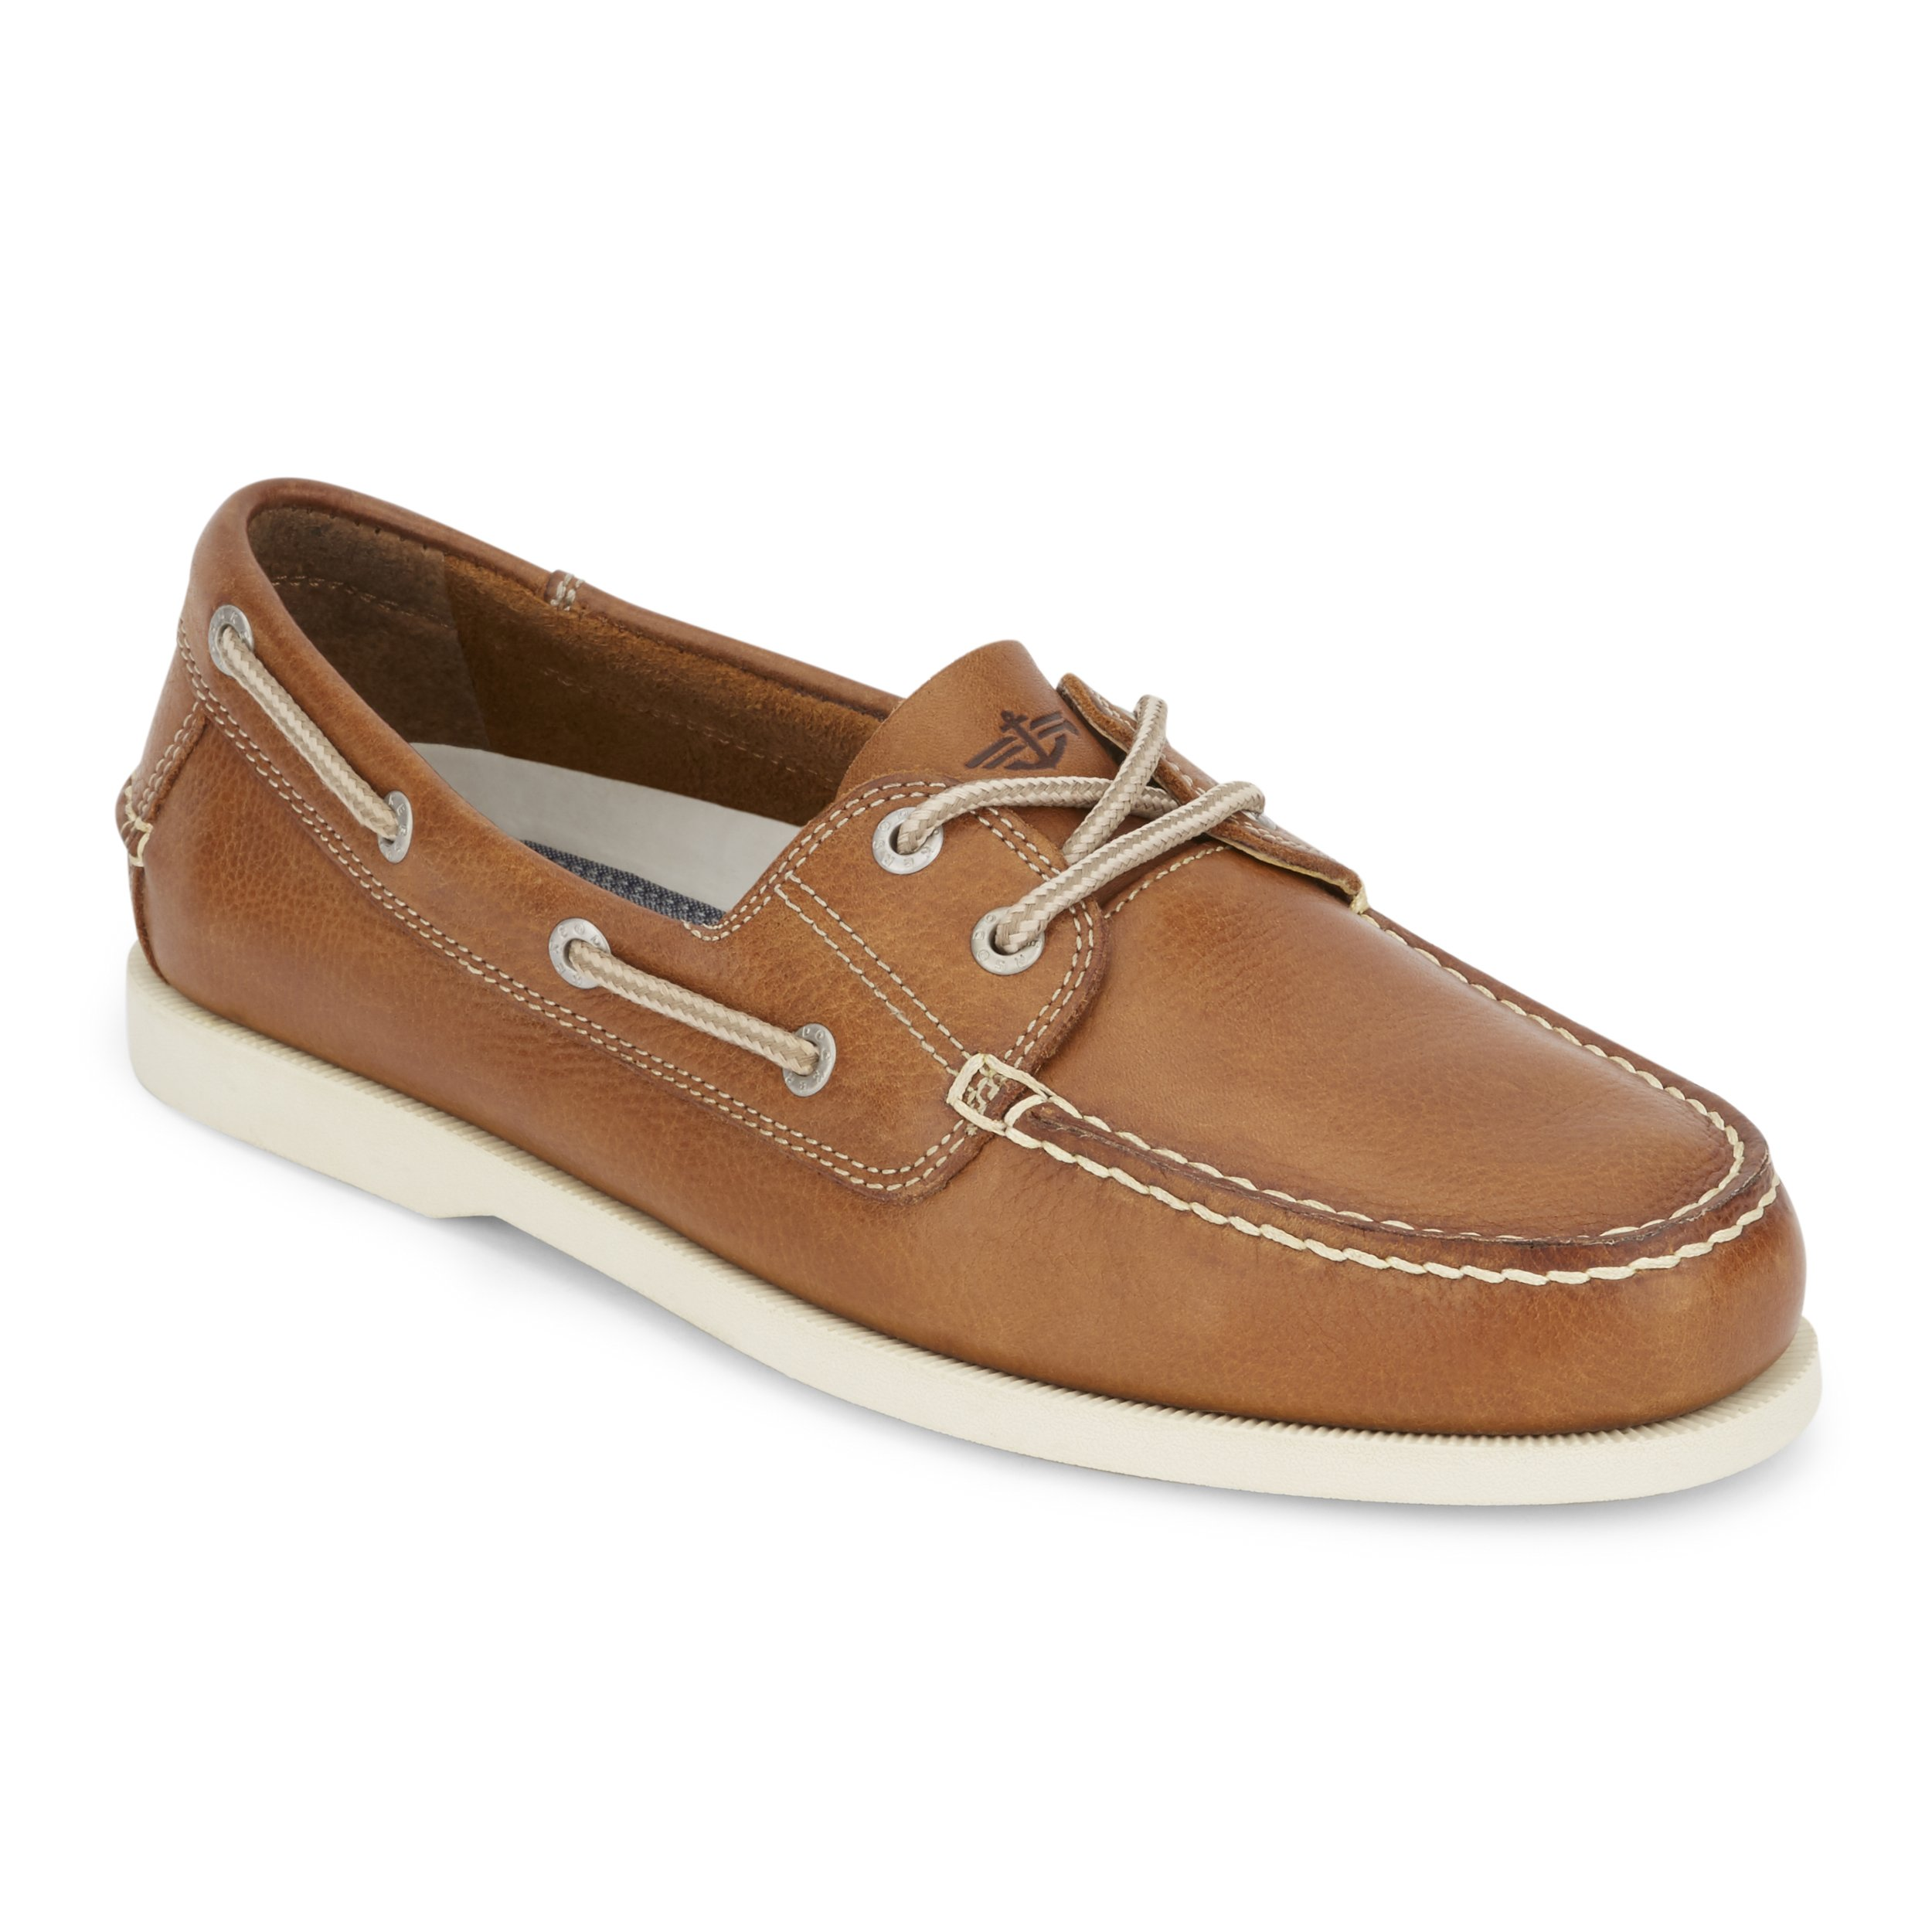 Dockers Mens Vargas Traditional Boat Shoe